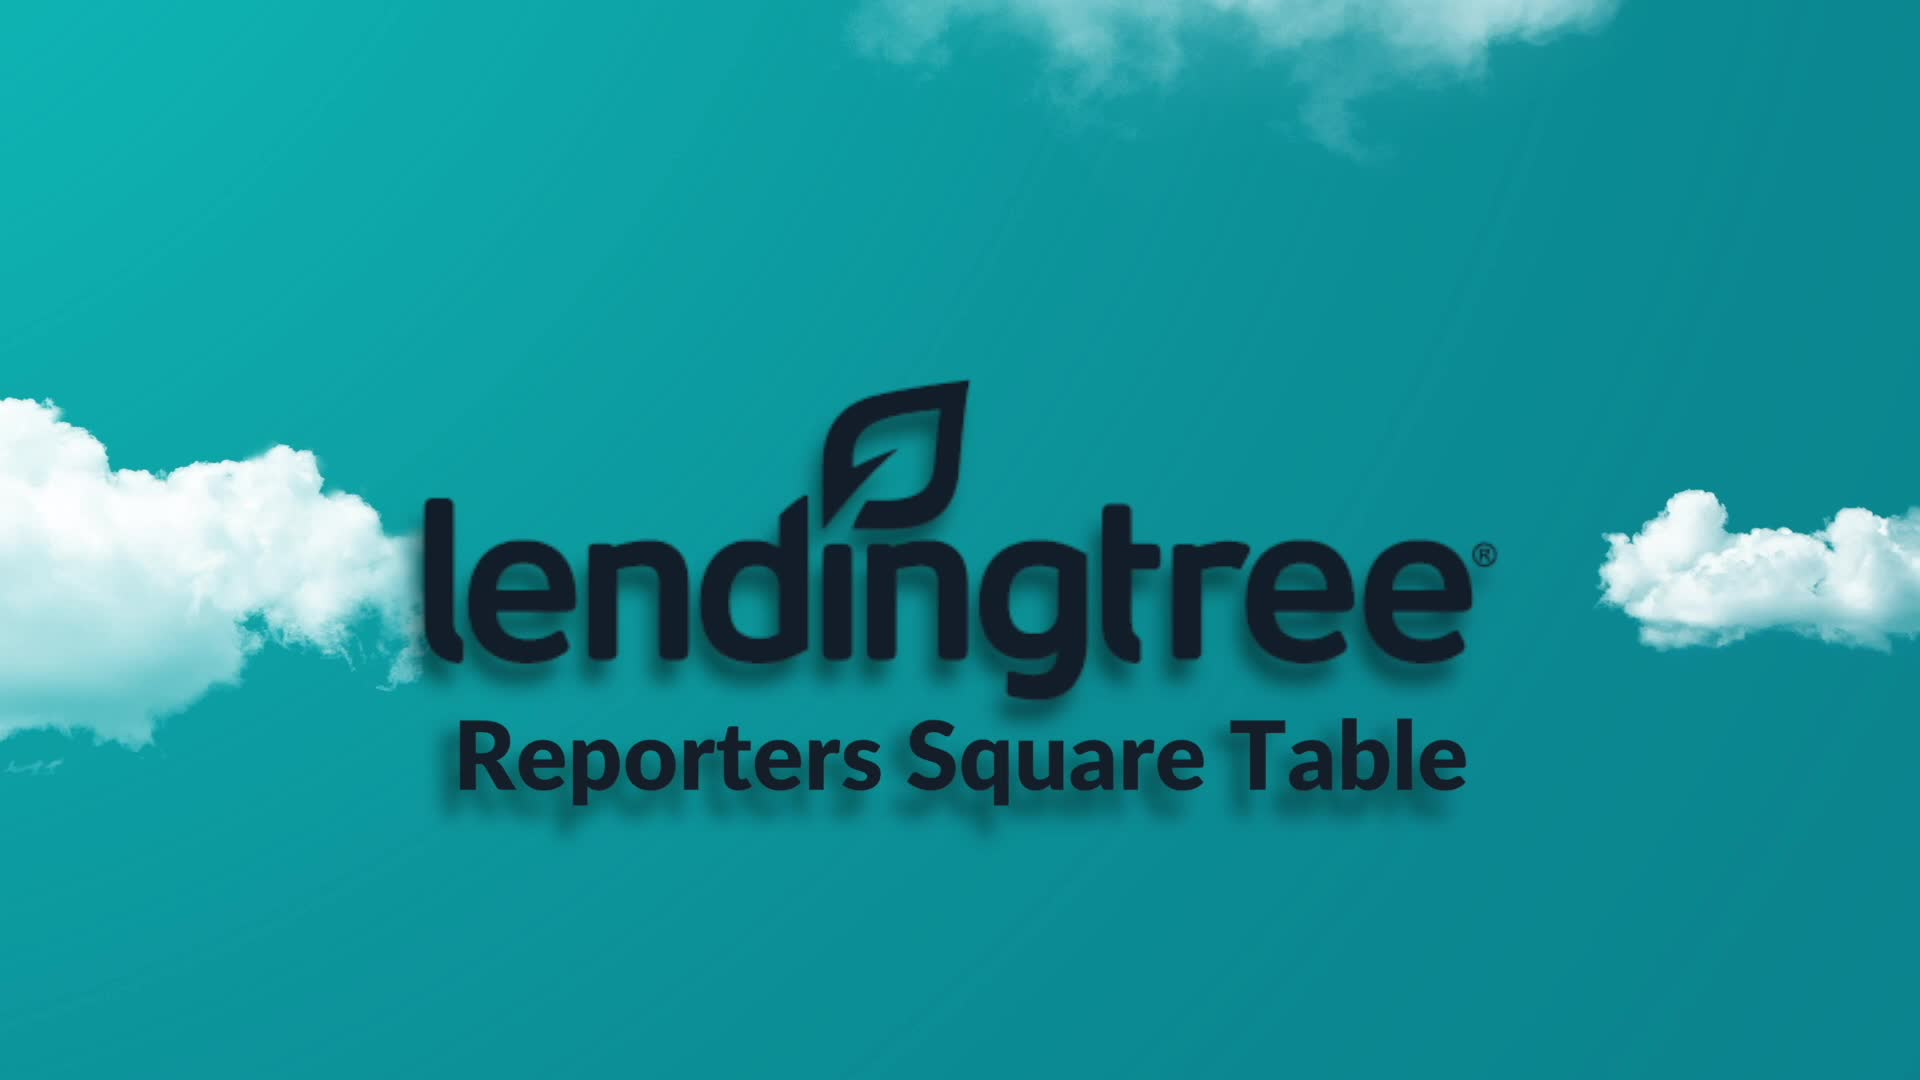 Reporters Square Table presented by LendingTree for AAPI Night- 5/6/21